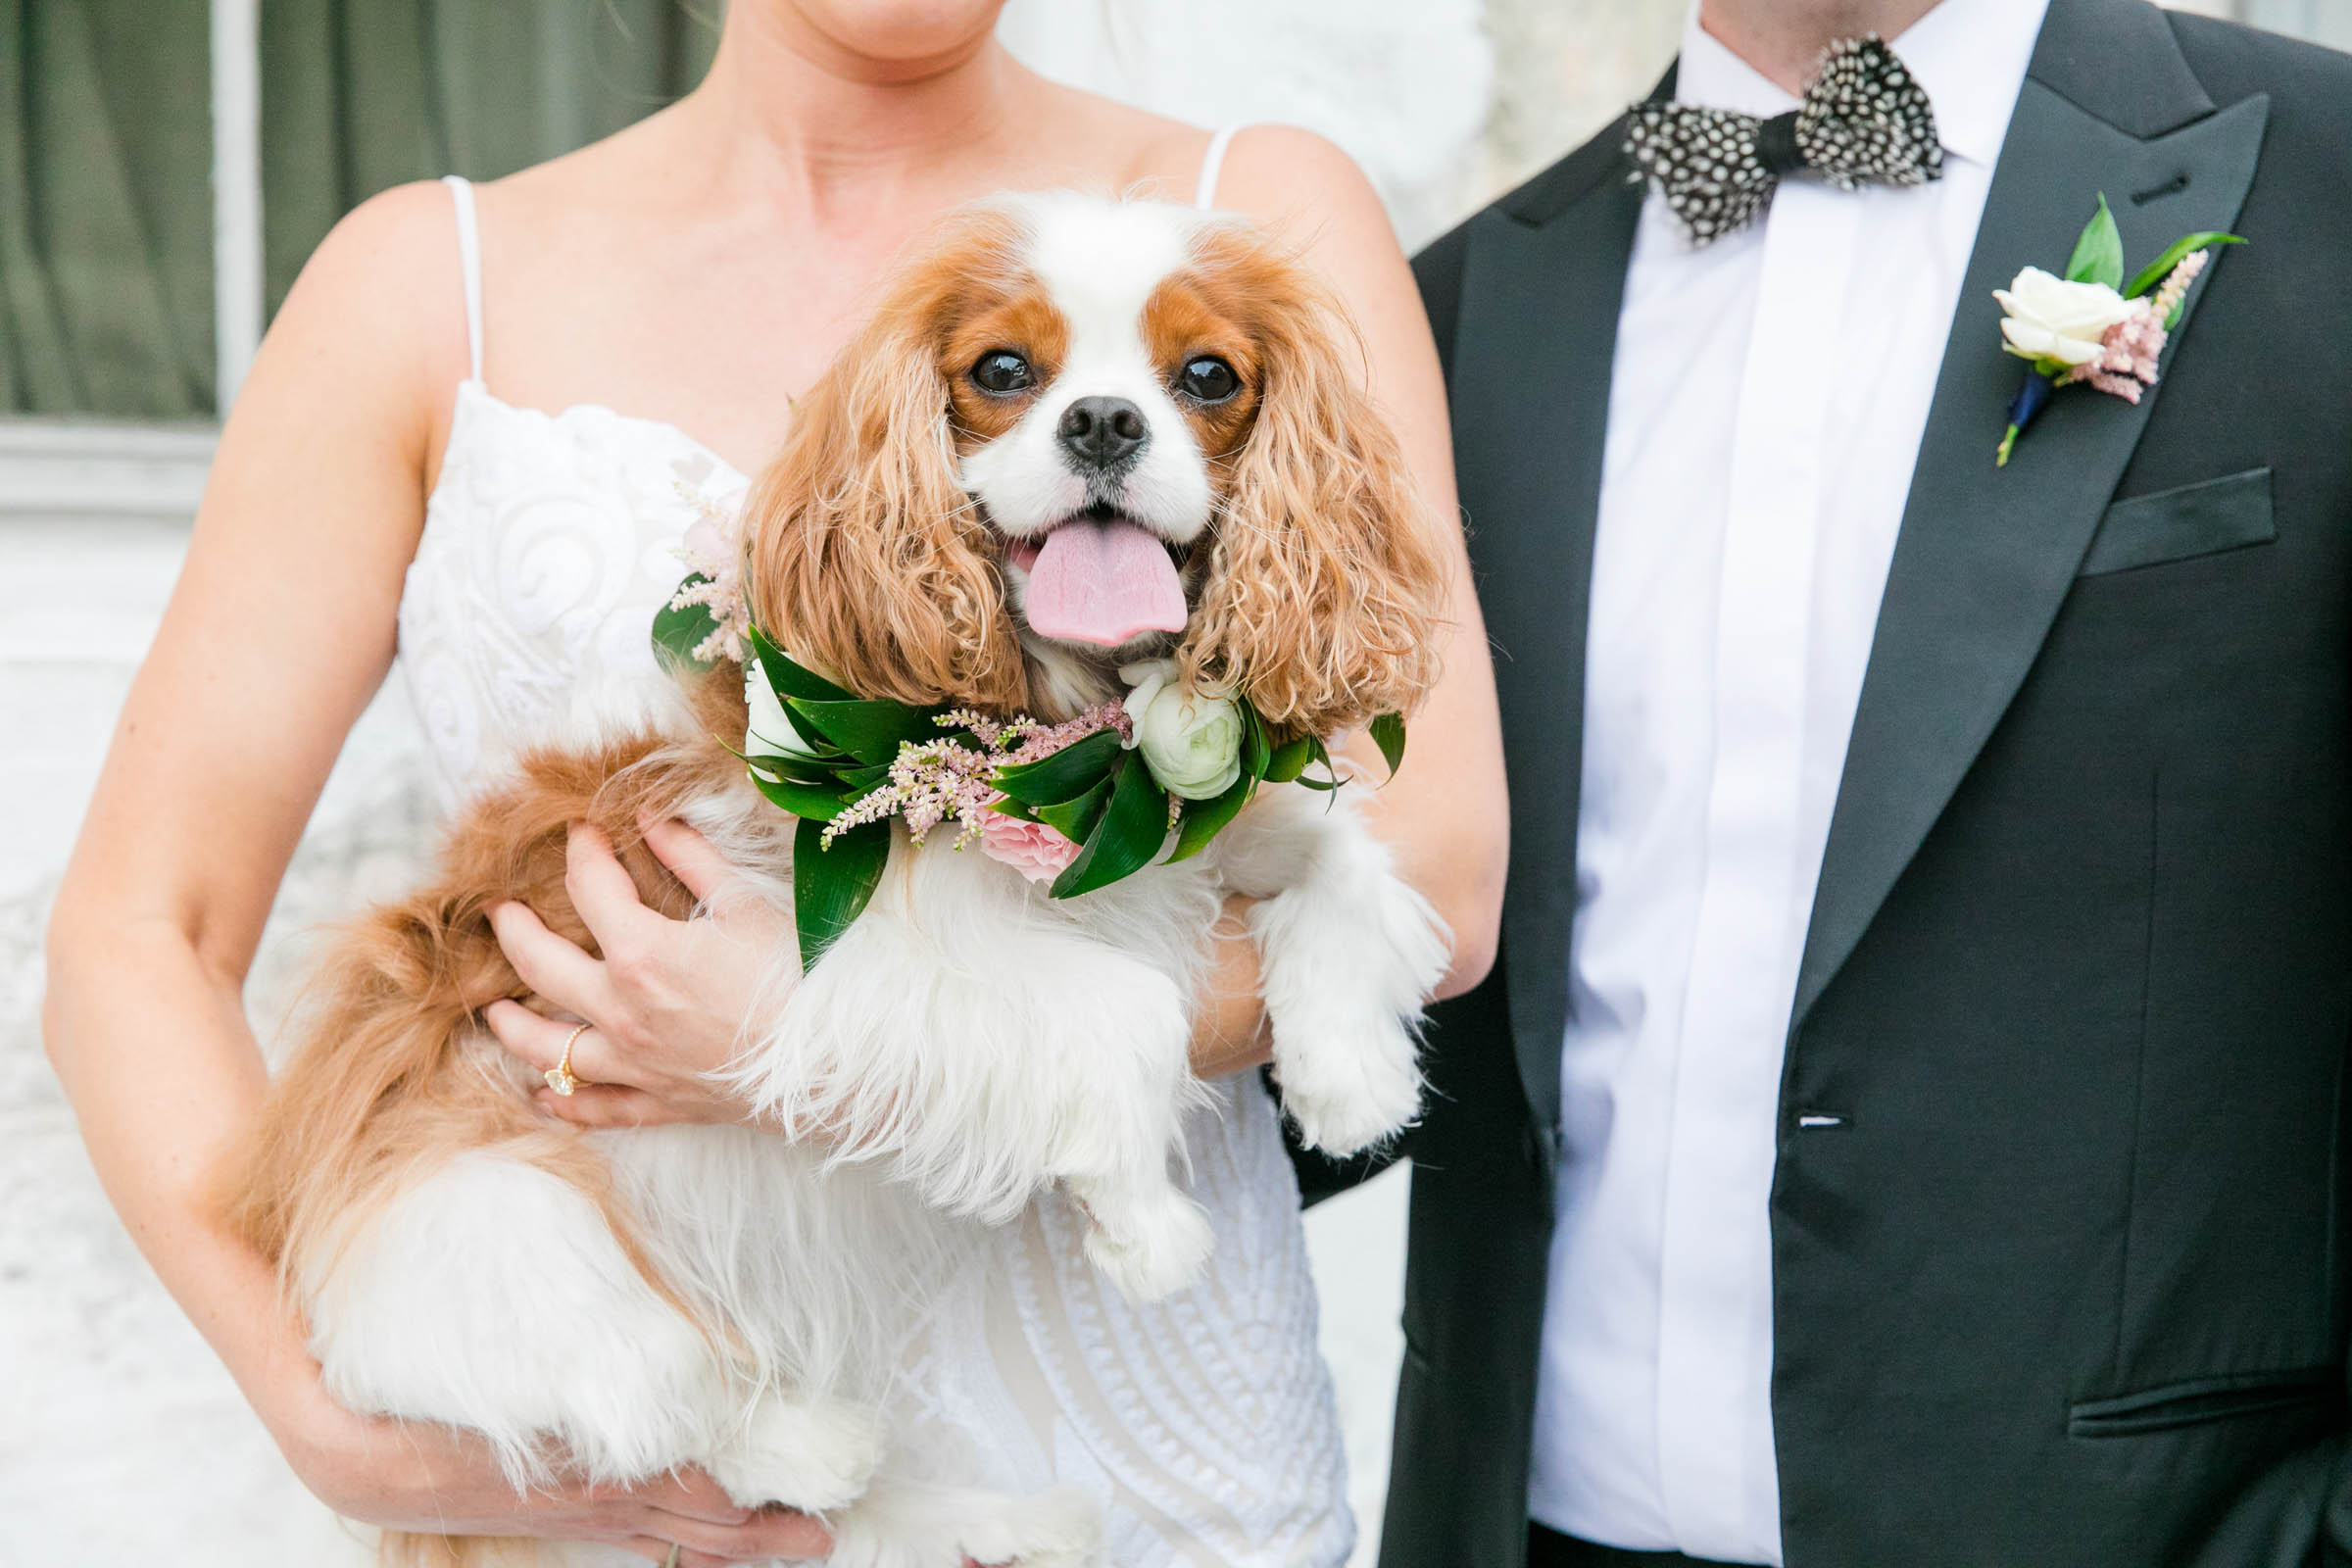 Groom and bride holding dog - photo by Dana Cubbage Weddings